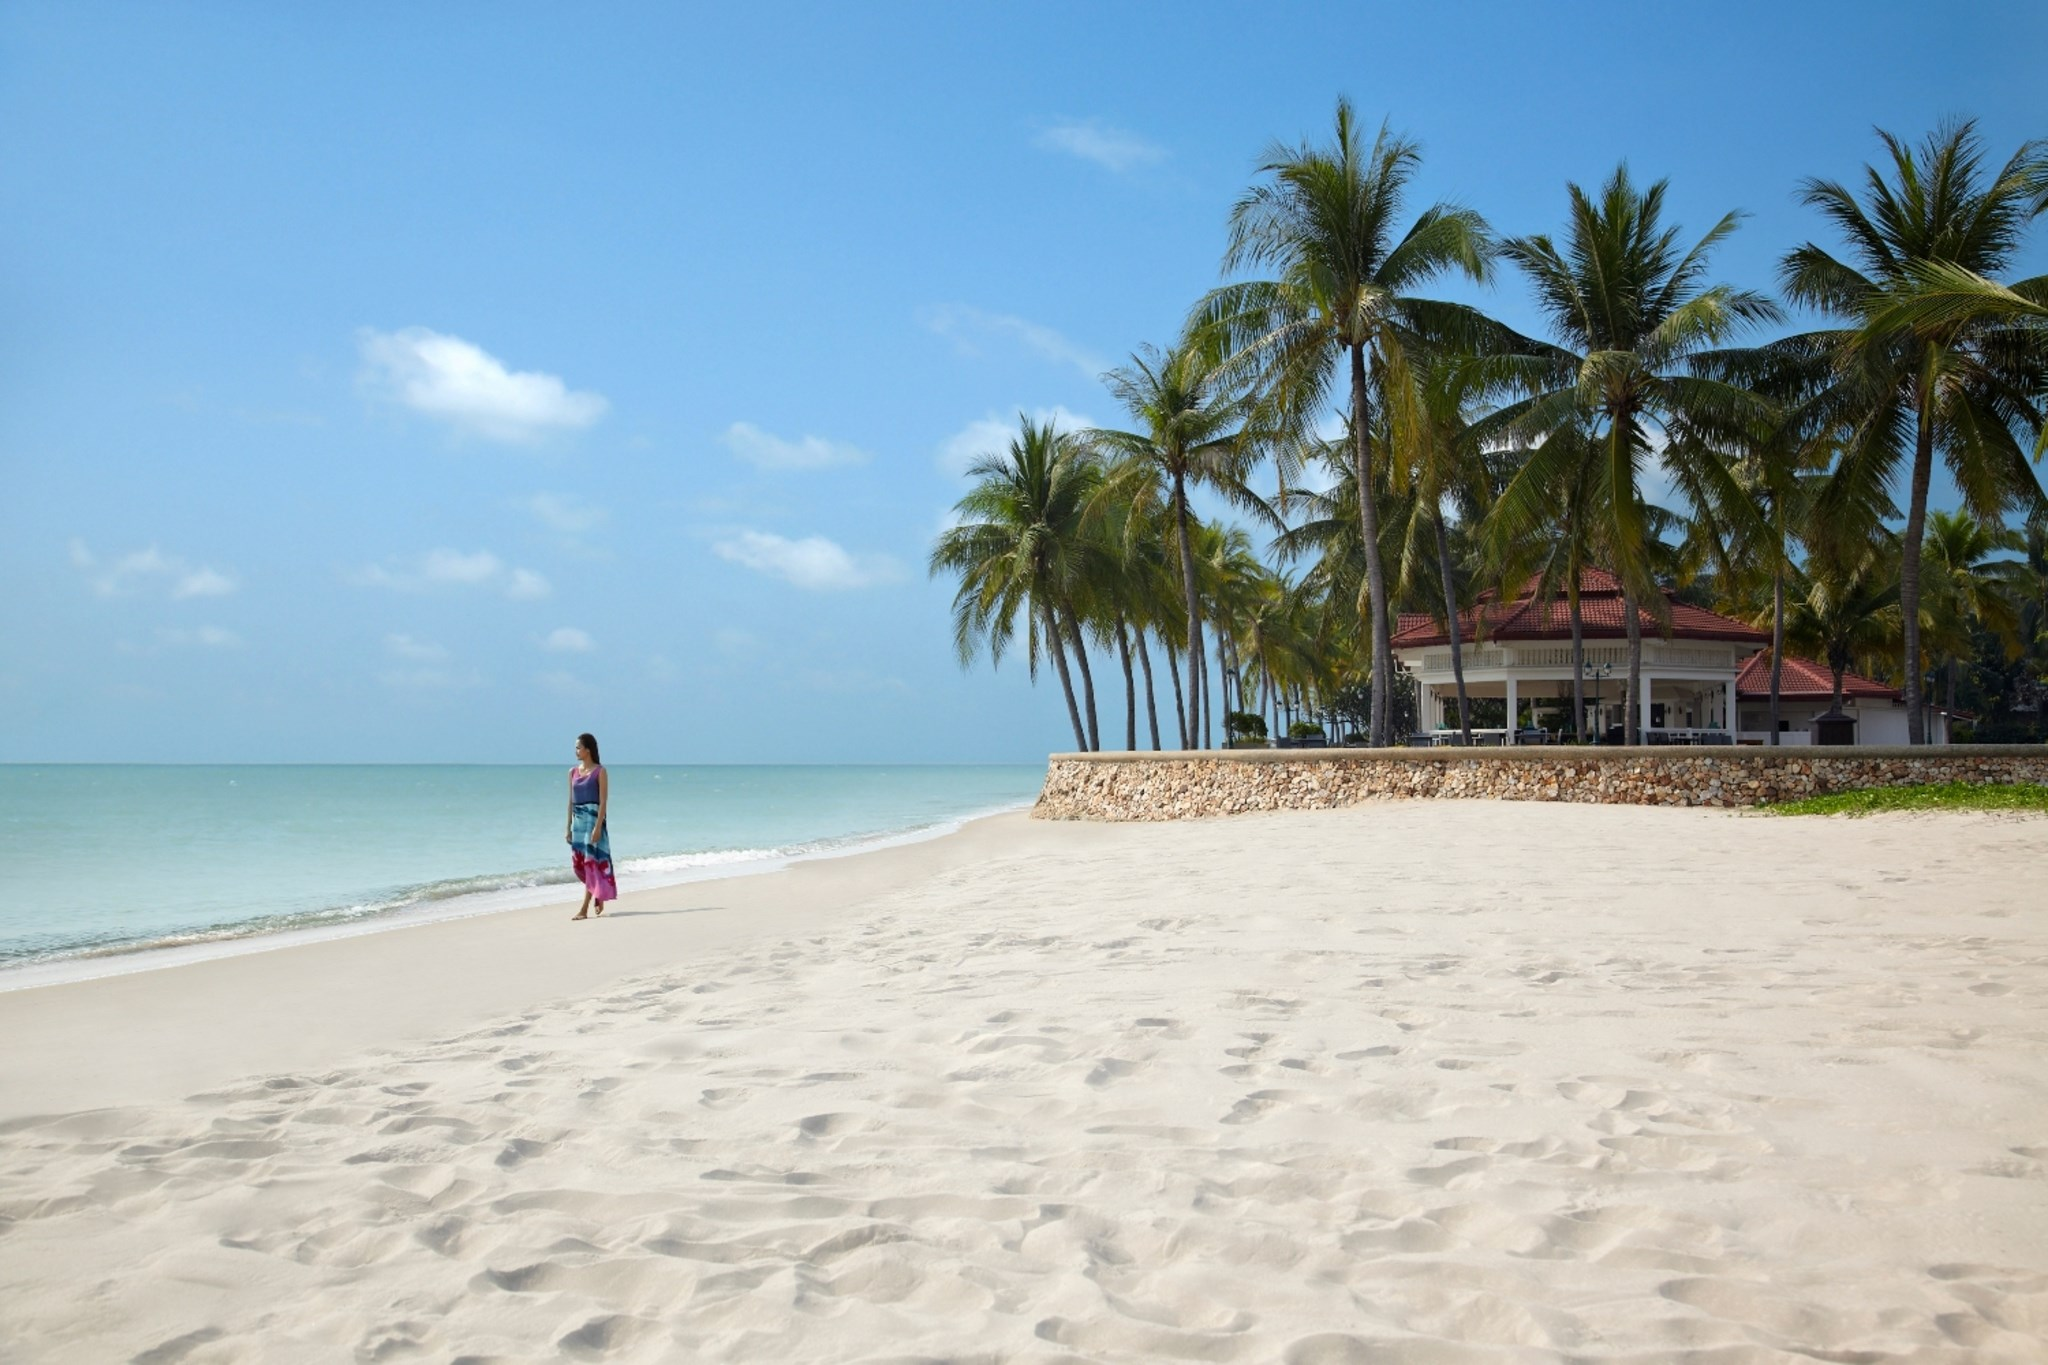 Hua Hin Beach The Gulf Coast Beaches, Dusit Thani Hua Hin Hotel in Hua Hin, Thailand | Ninety East